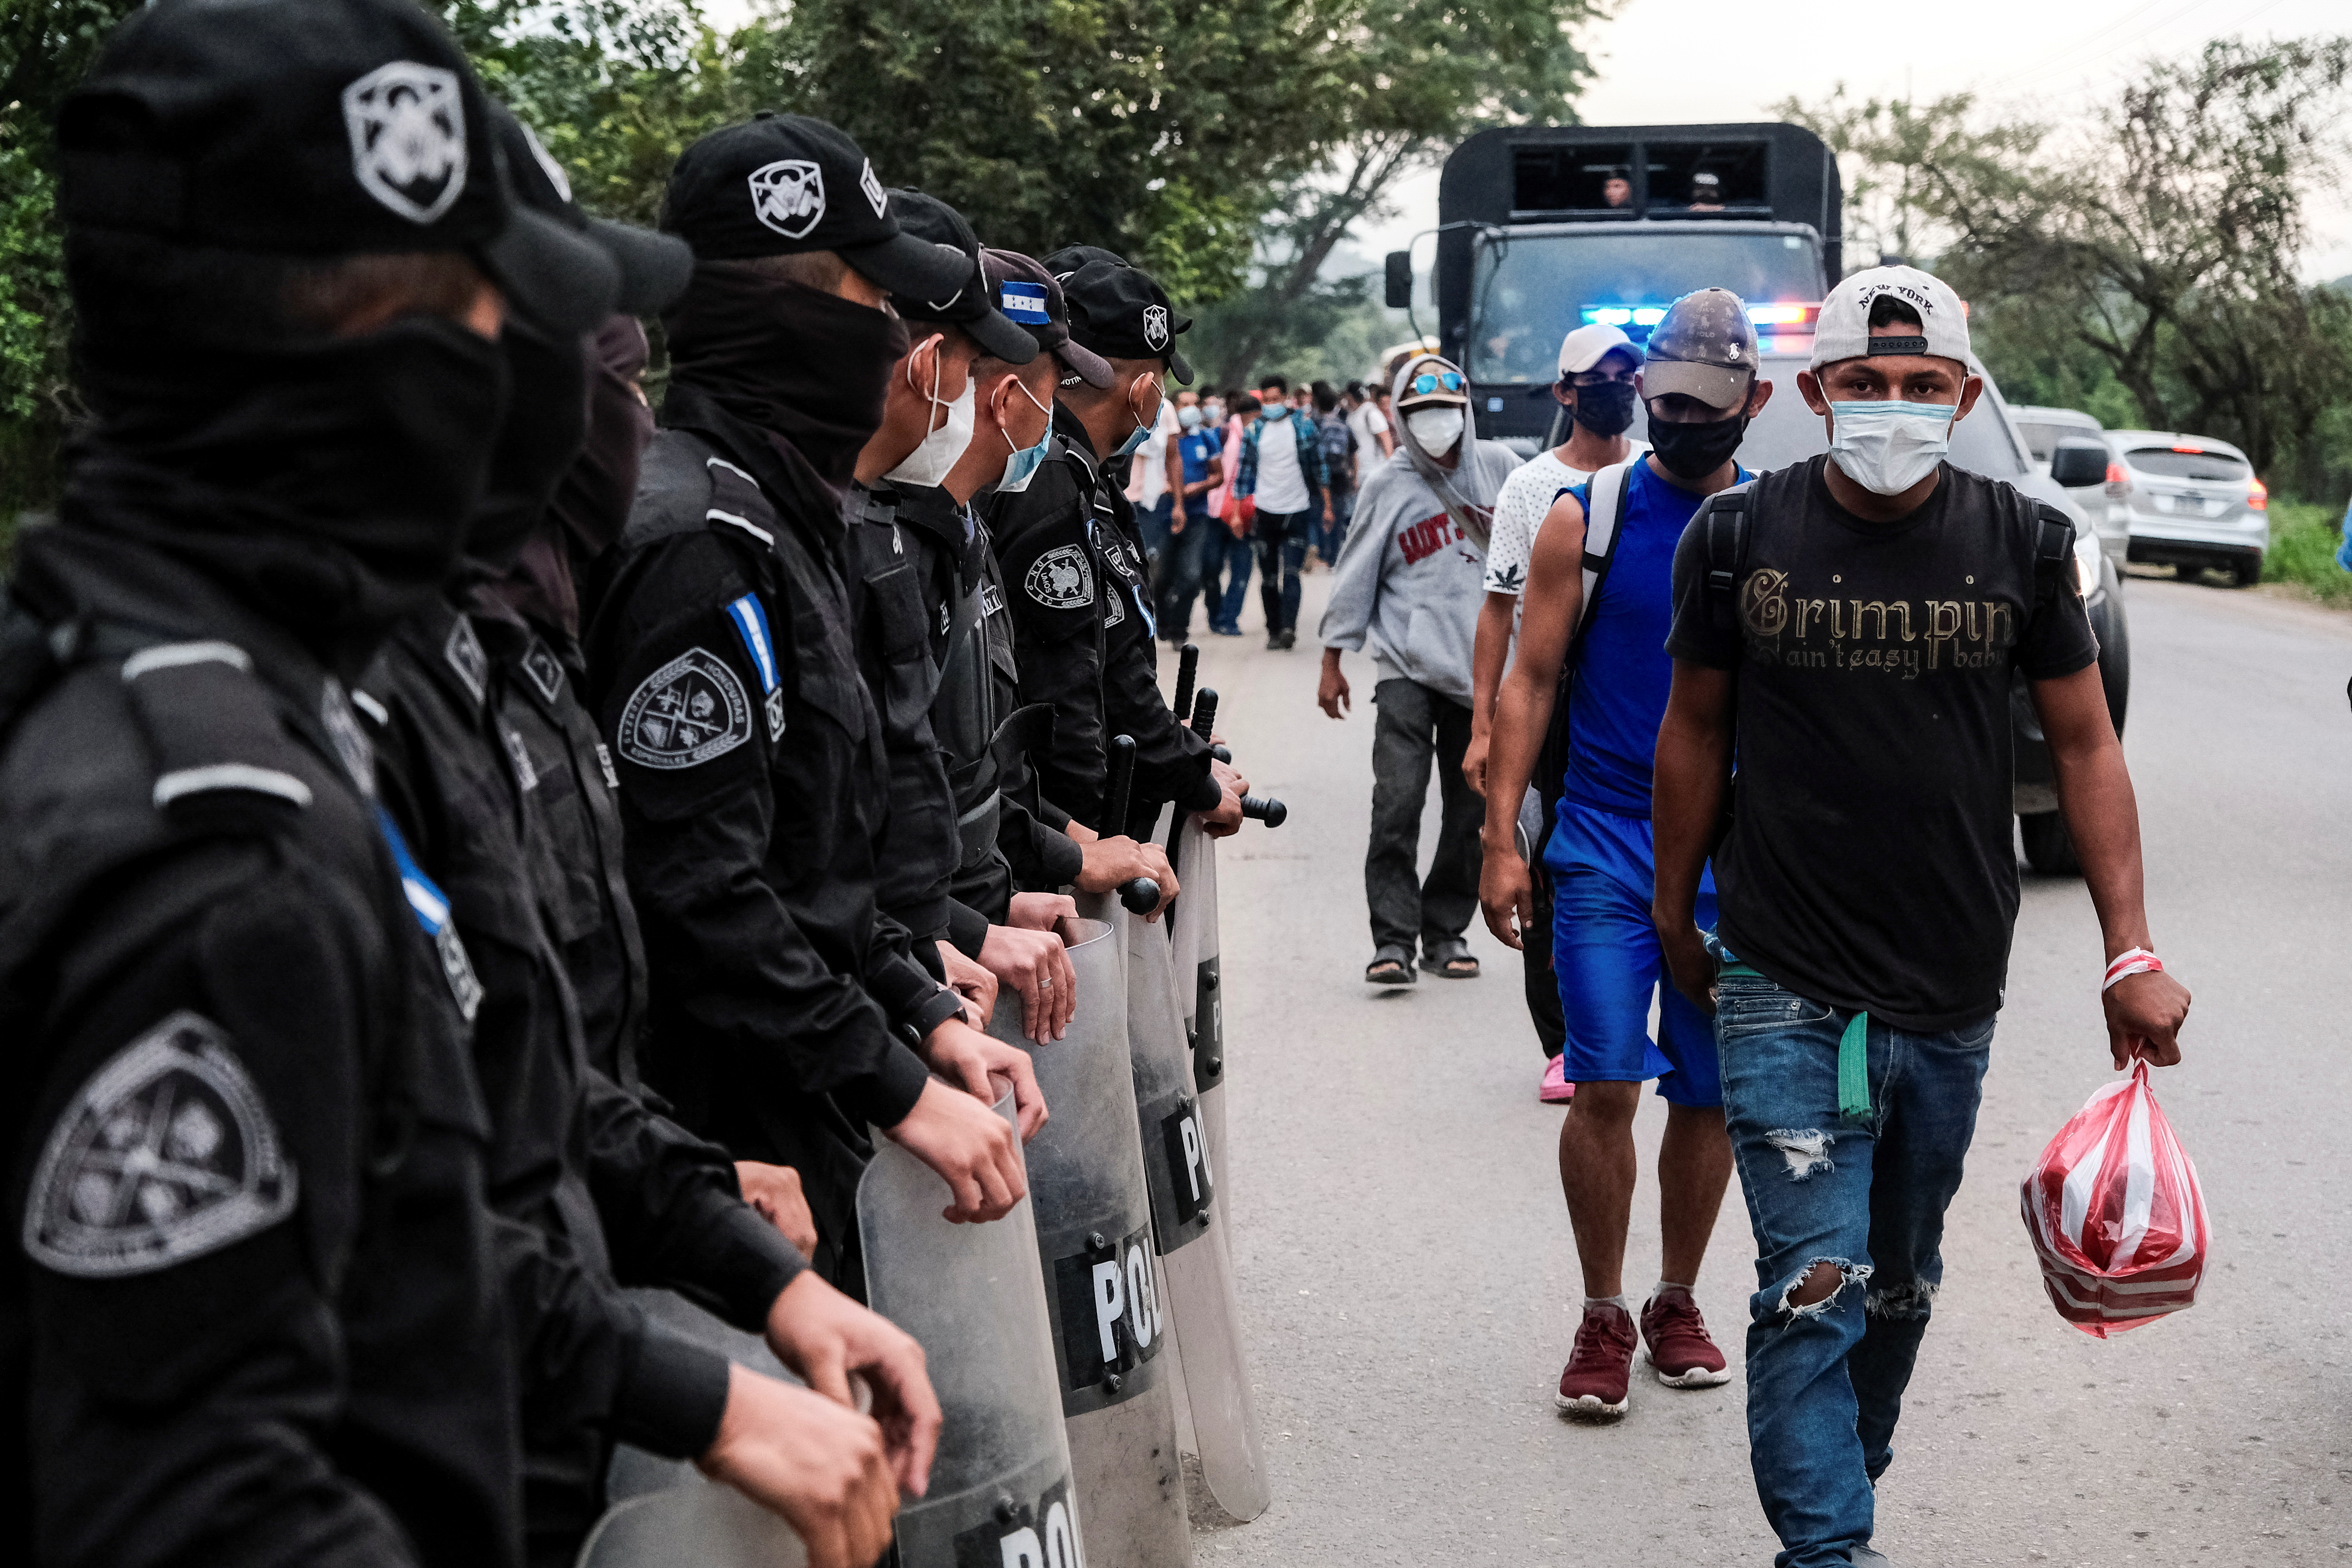 Hondurans walk past police officers at a police checkpoint in a new caravan of migrants, set to head to the United States, in Cofradia, Honduras January 15, 2021. REUTERS/Yoseph Amaya